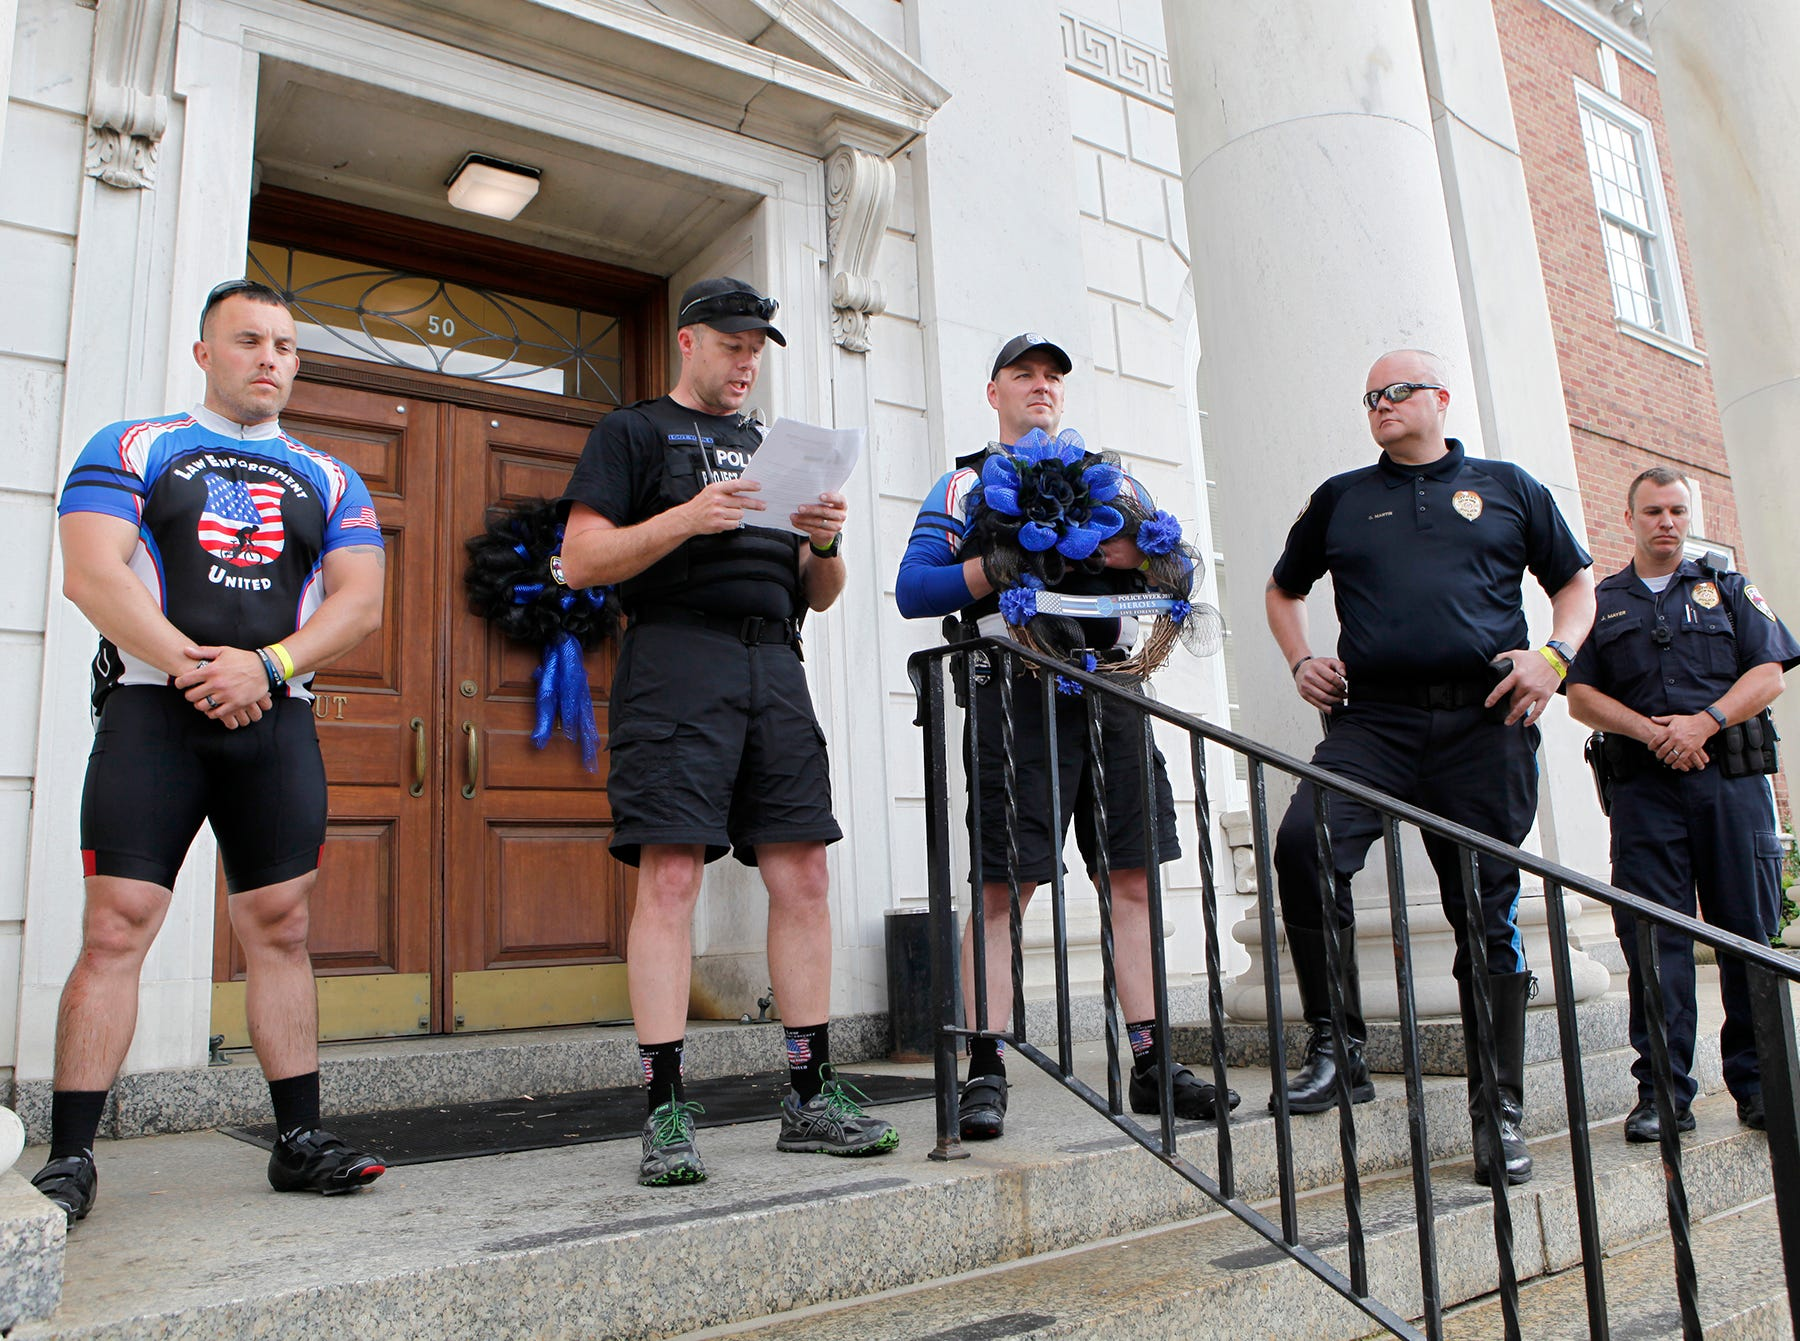 Cory Reader, president of the PA Division of Law Enforcement United, center, reads Officer Alex Sable's information from the Officer Down Memorial Page, during a brief stop at York City Police headquarters, Saturday, May 11, 2019. Officer Mike Watts, left, from Plymouth Township PA, was riding in honor of Officer Sable. 